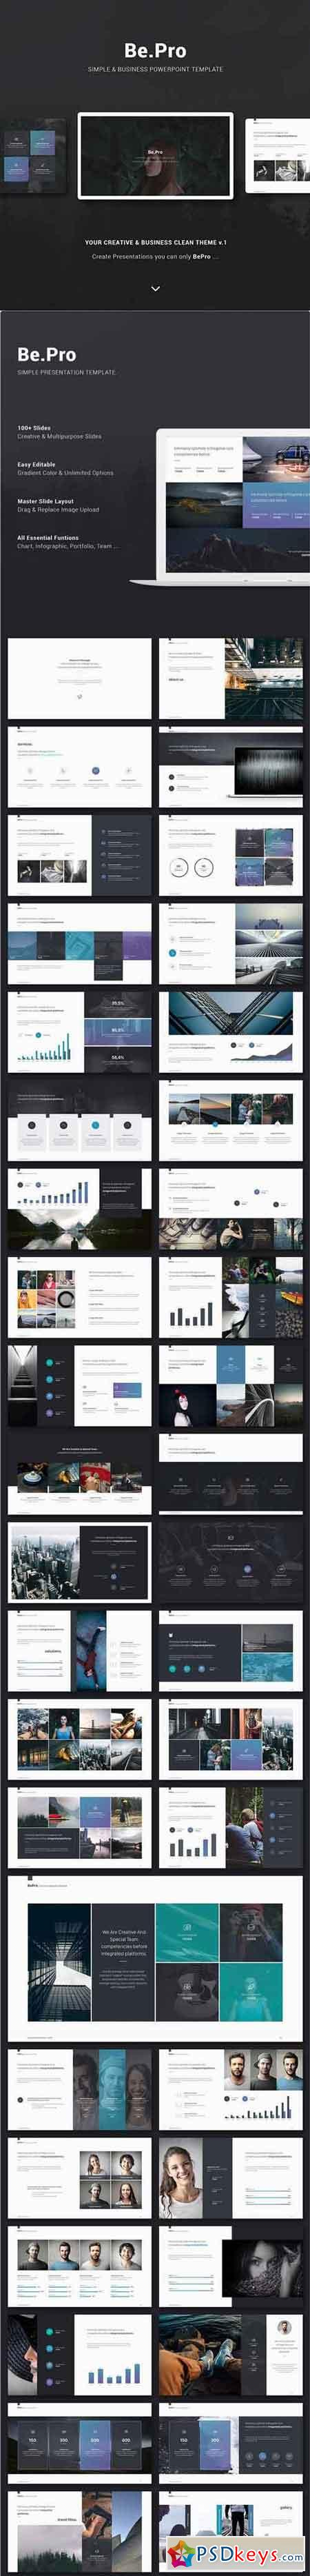 BePro Simply & Business Powerpoint Template 18369694